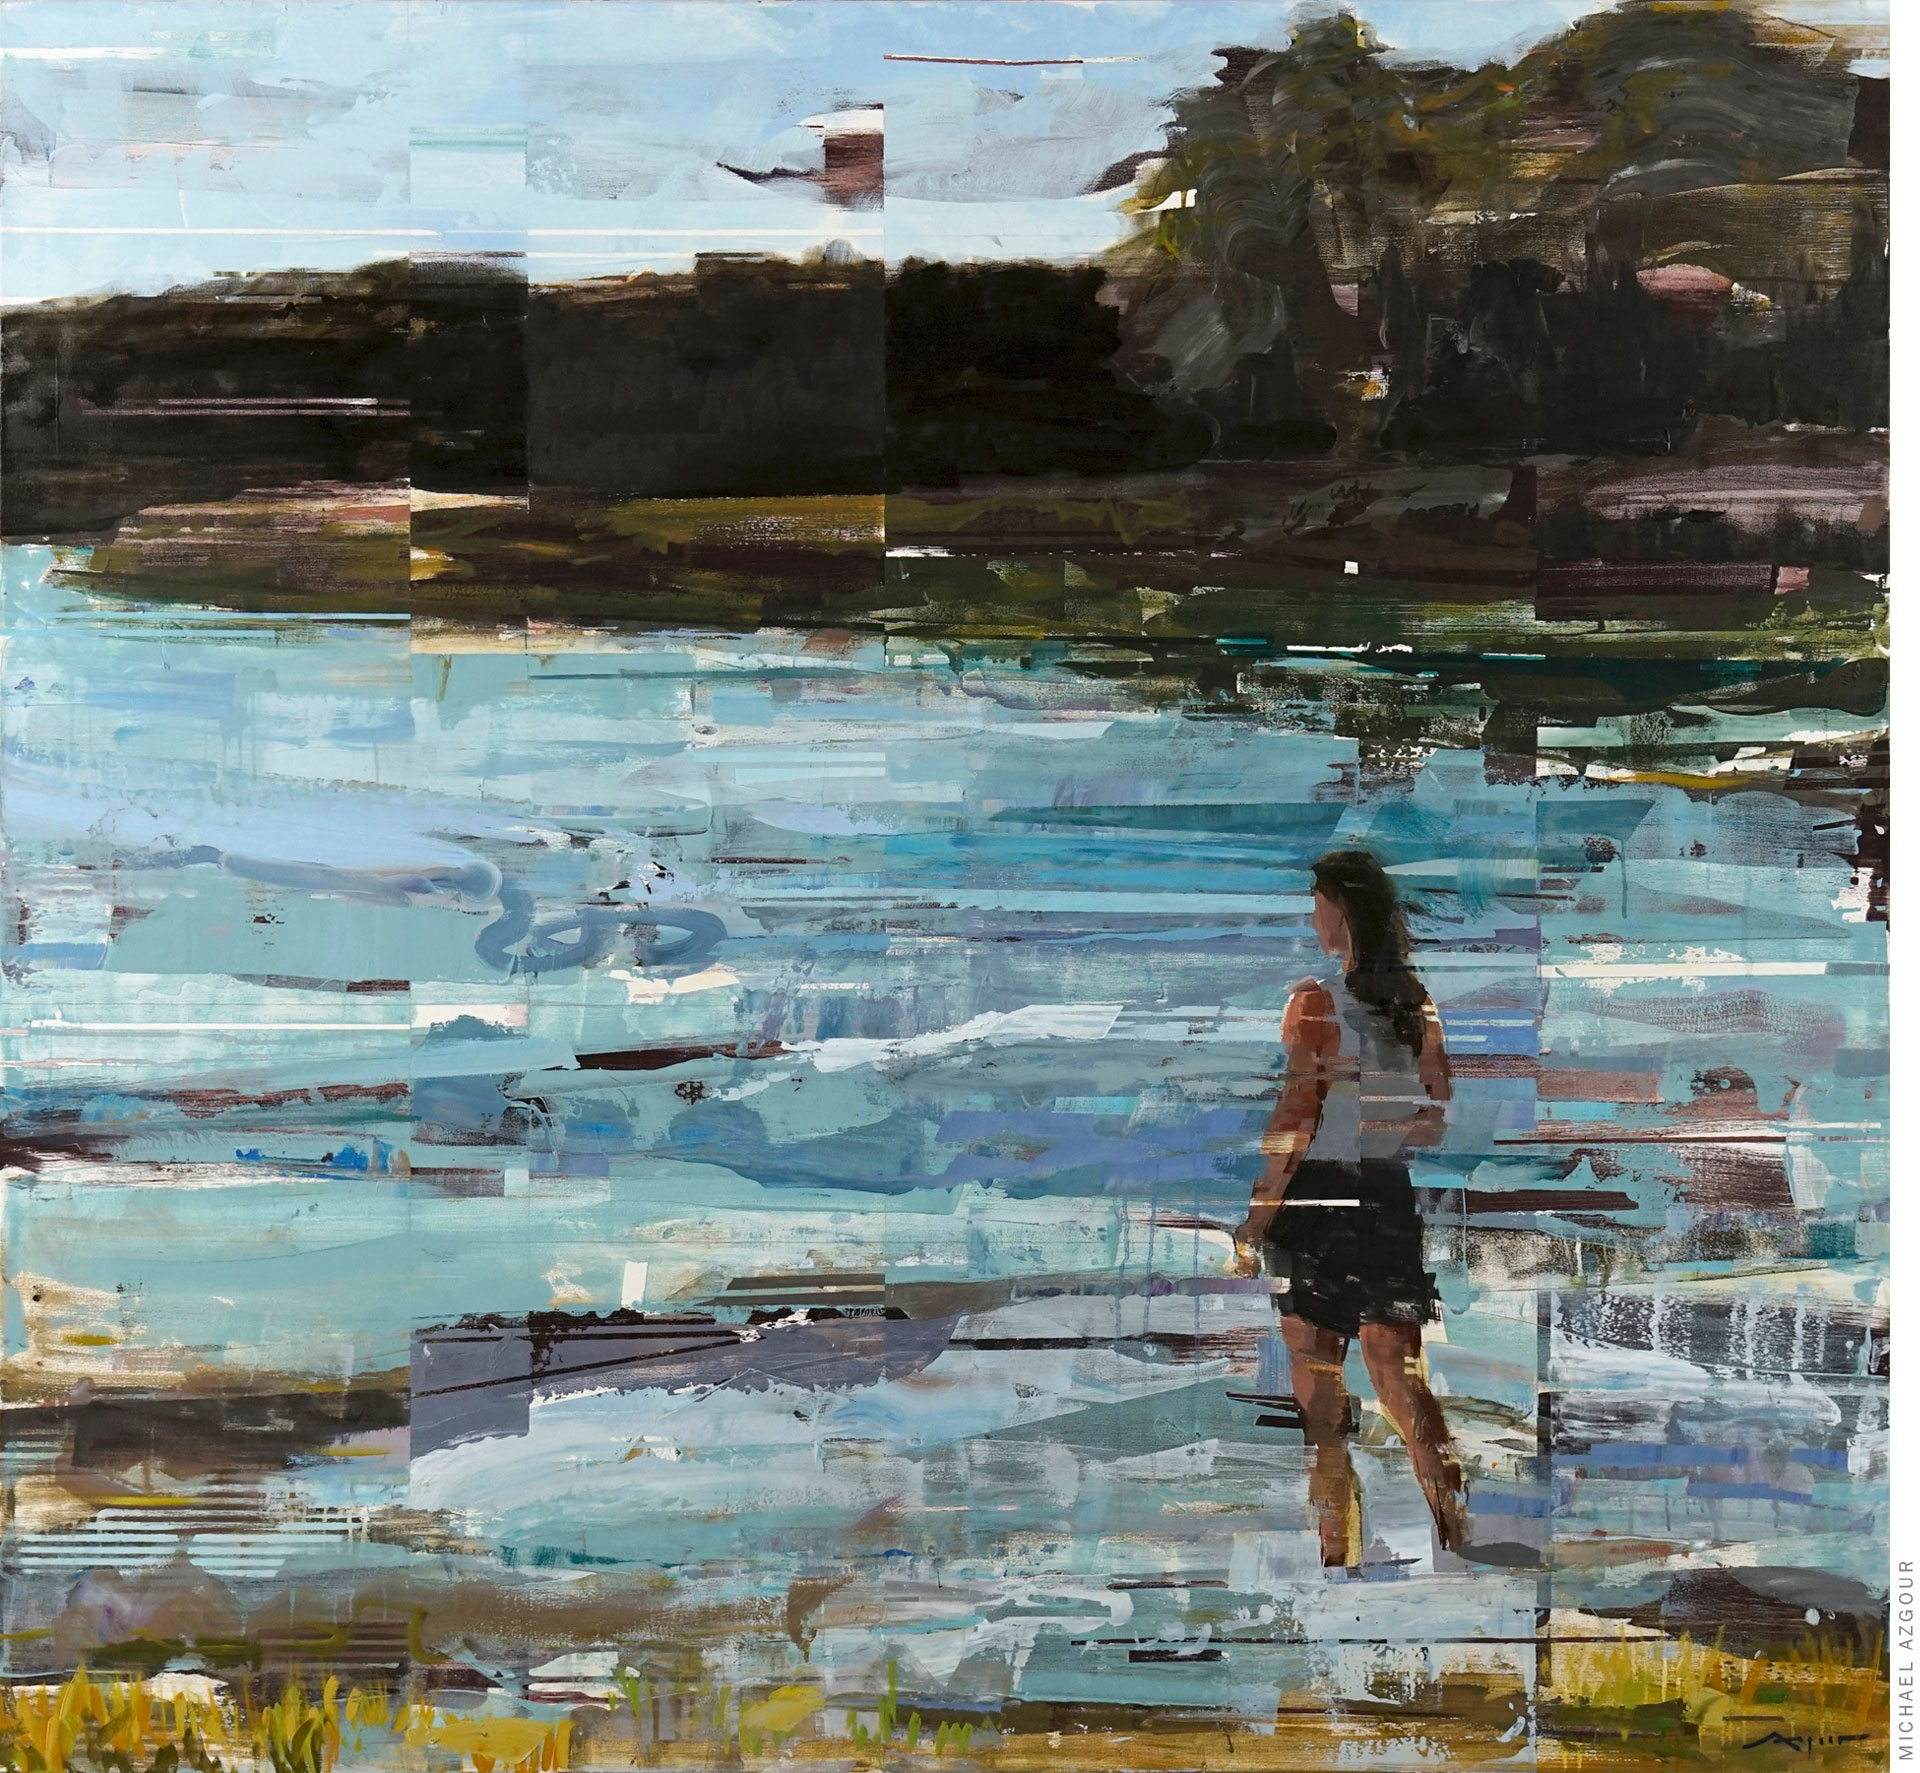 Painting depicting a woman standing and looking over the lake water in a natural landscape setting.